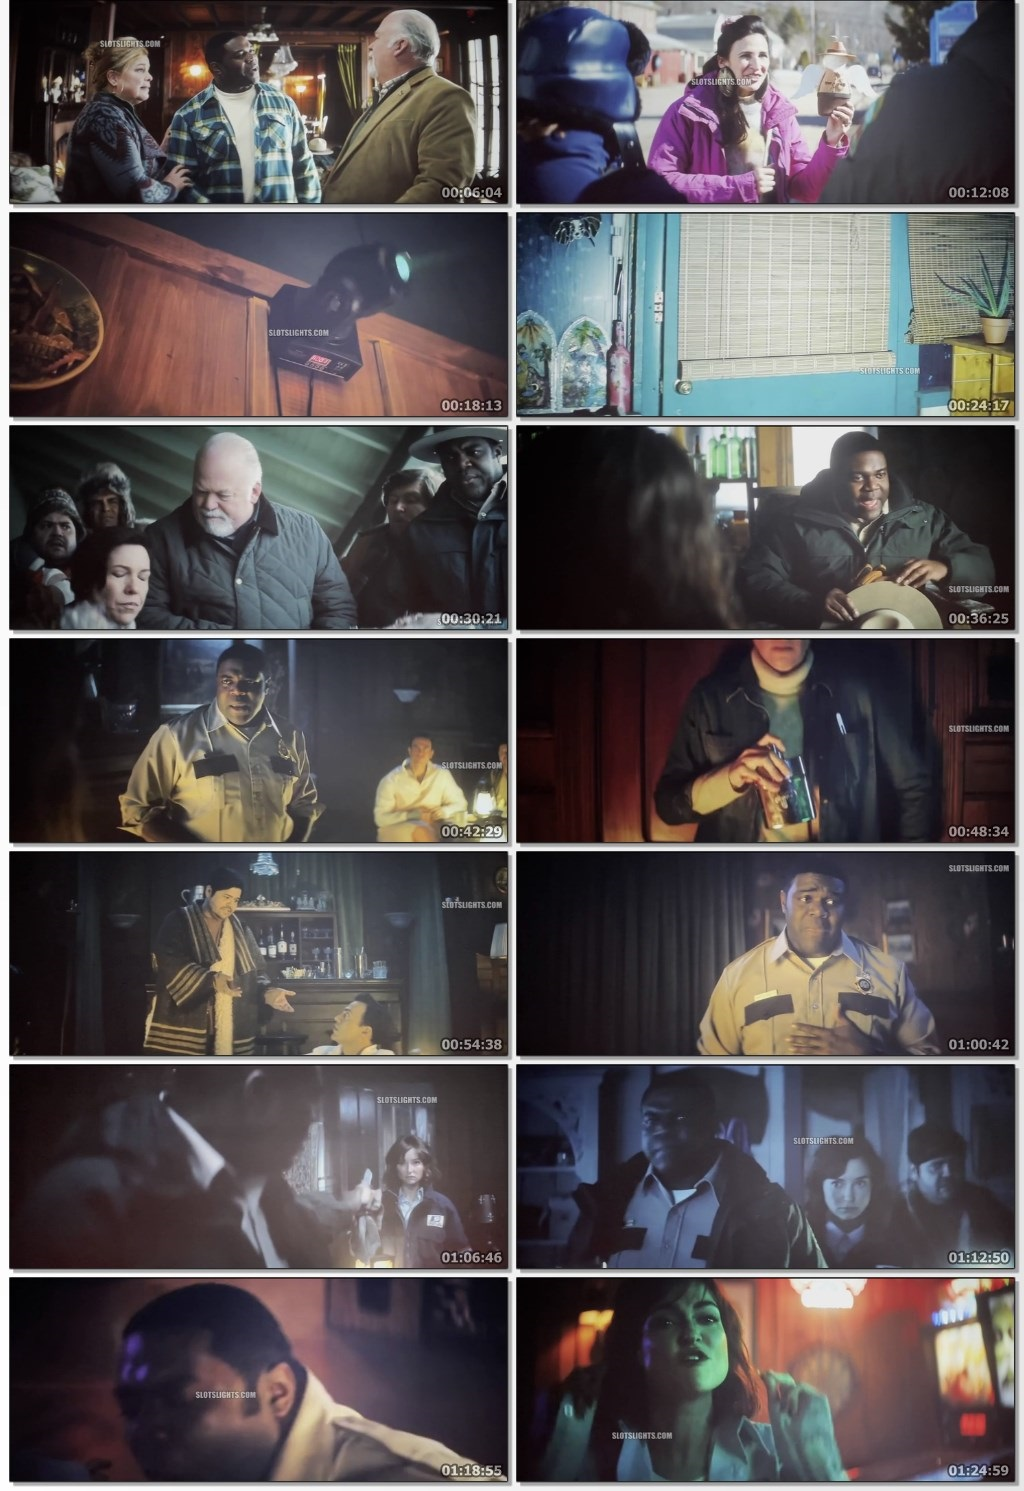 Werewolves-Within-2021-www-9kmovies-cards-English-720p-HDCAM-850-MB-mkv-thumbs0ac5ed441cd74e7d